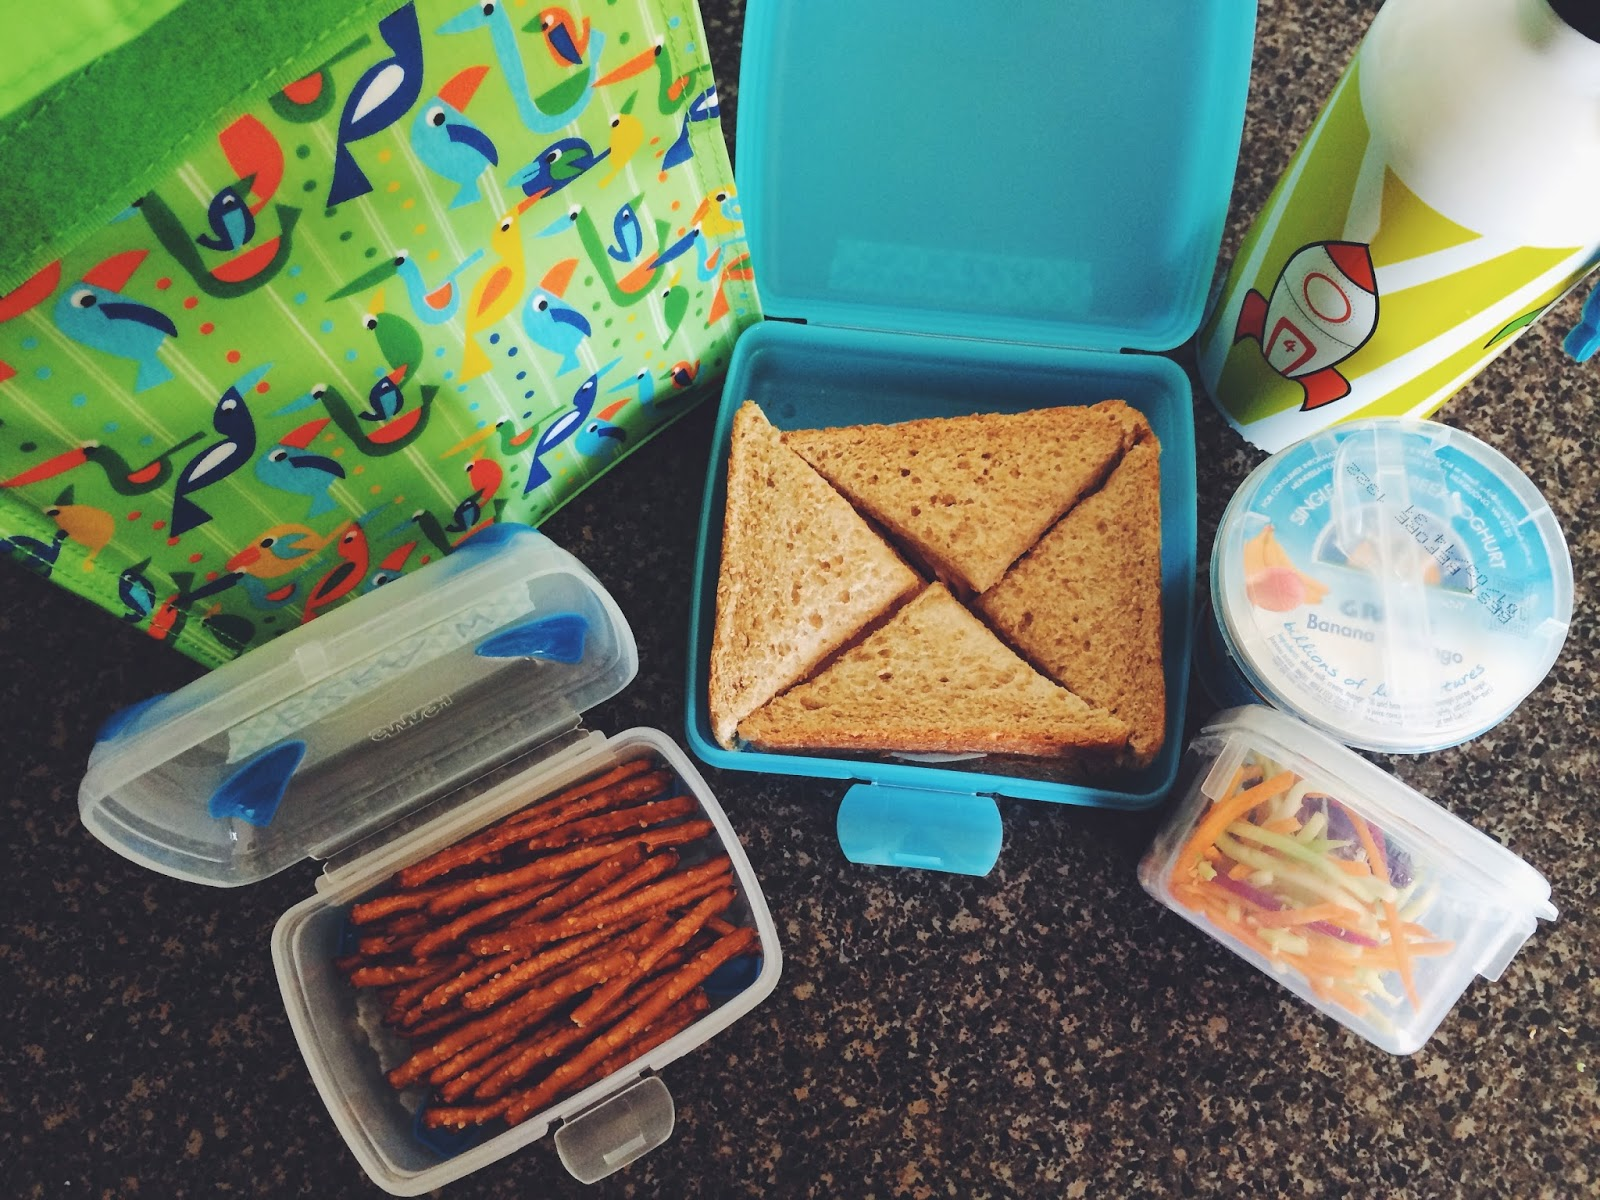 first packed lunch for a play school for my toddler